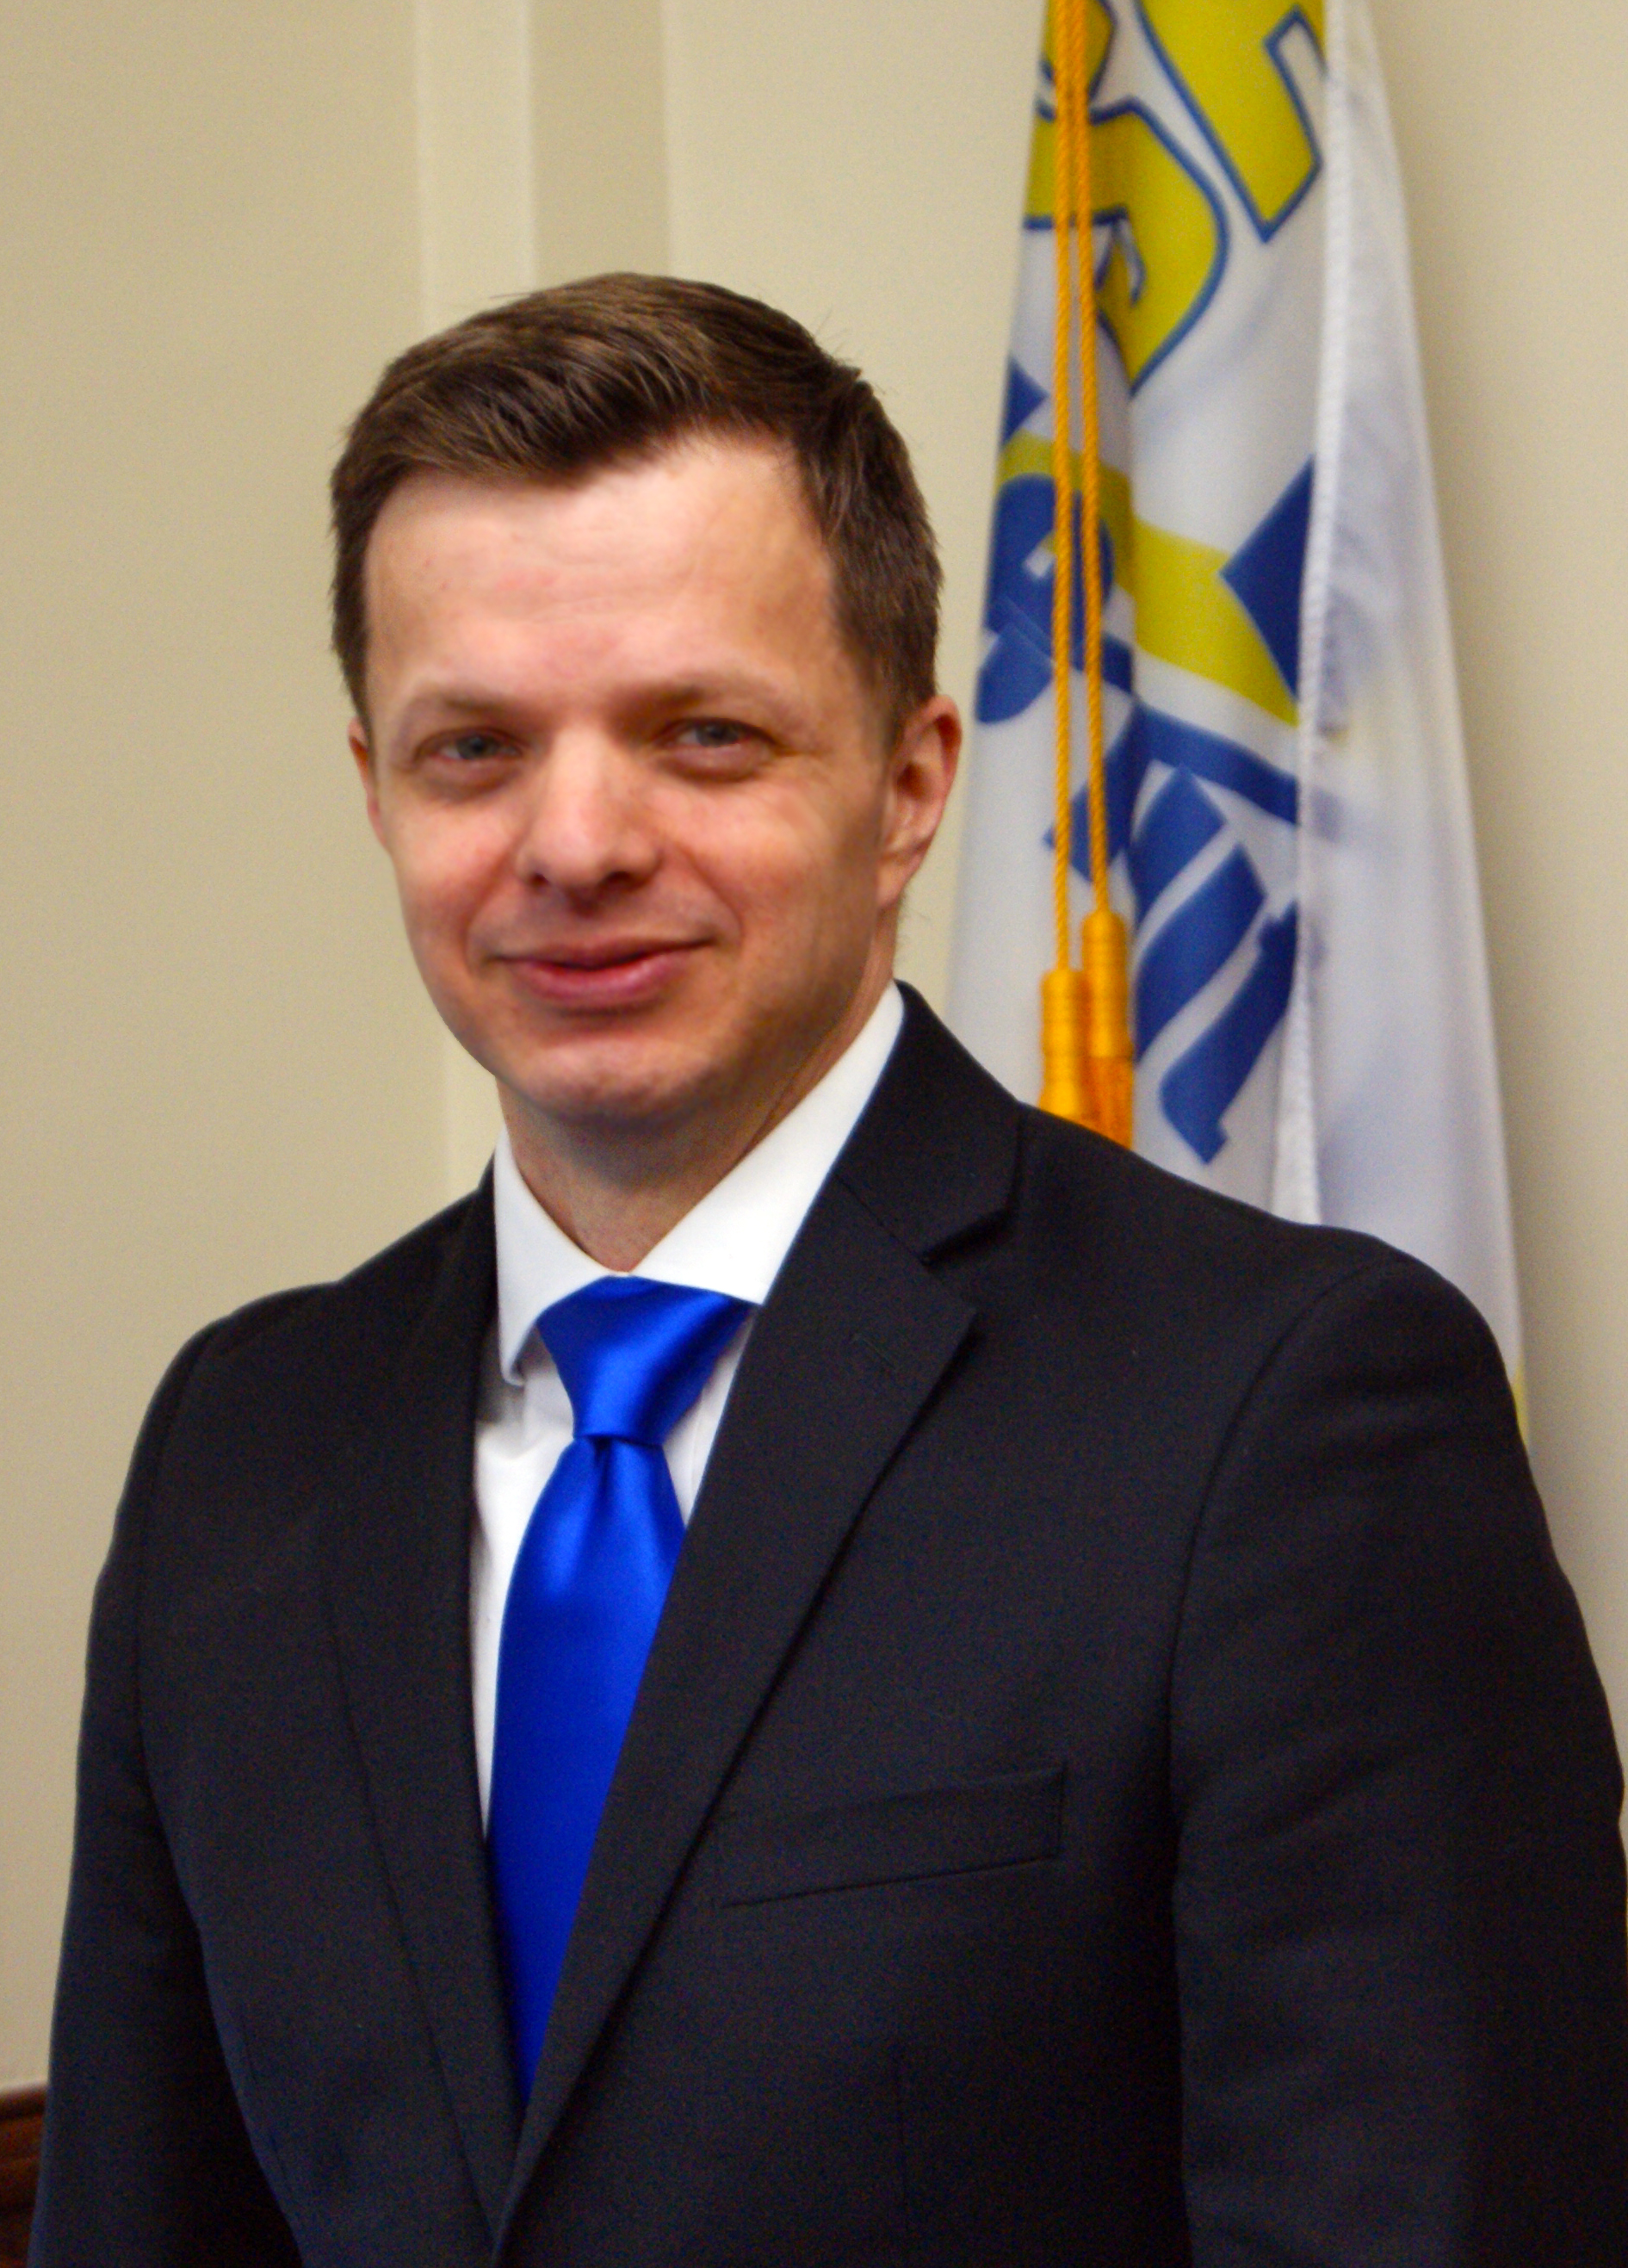 young man in business suit